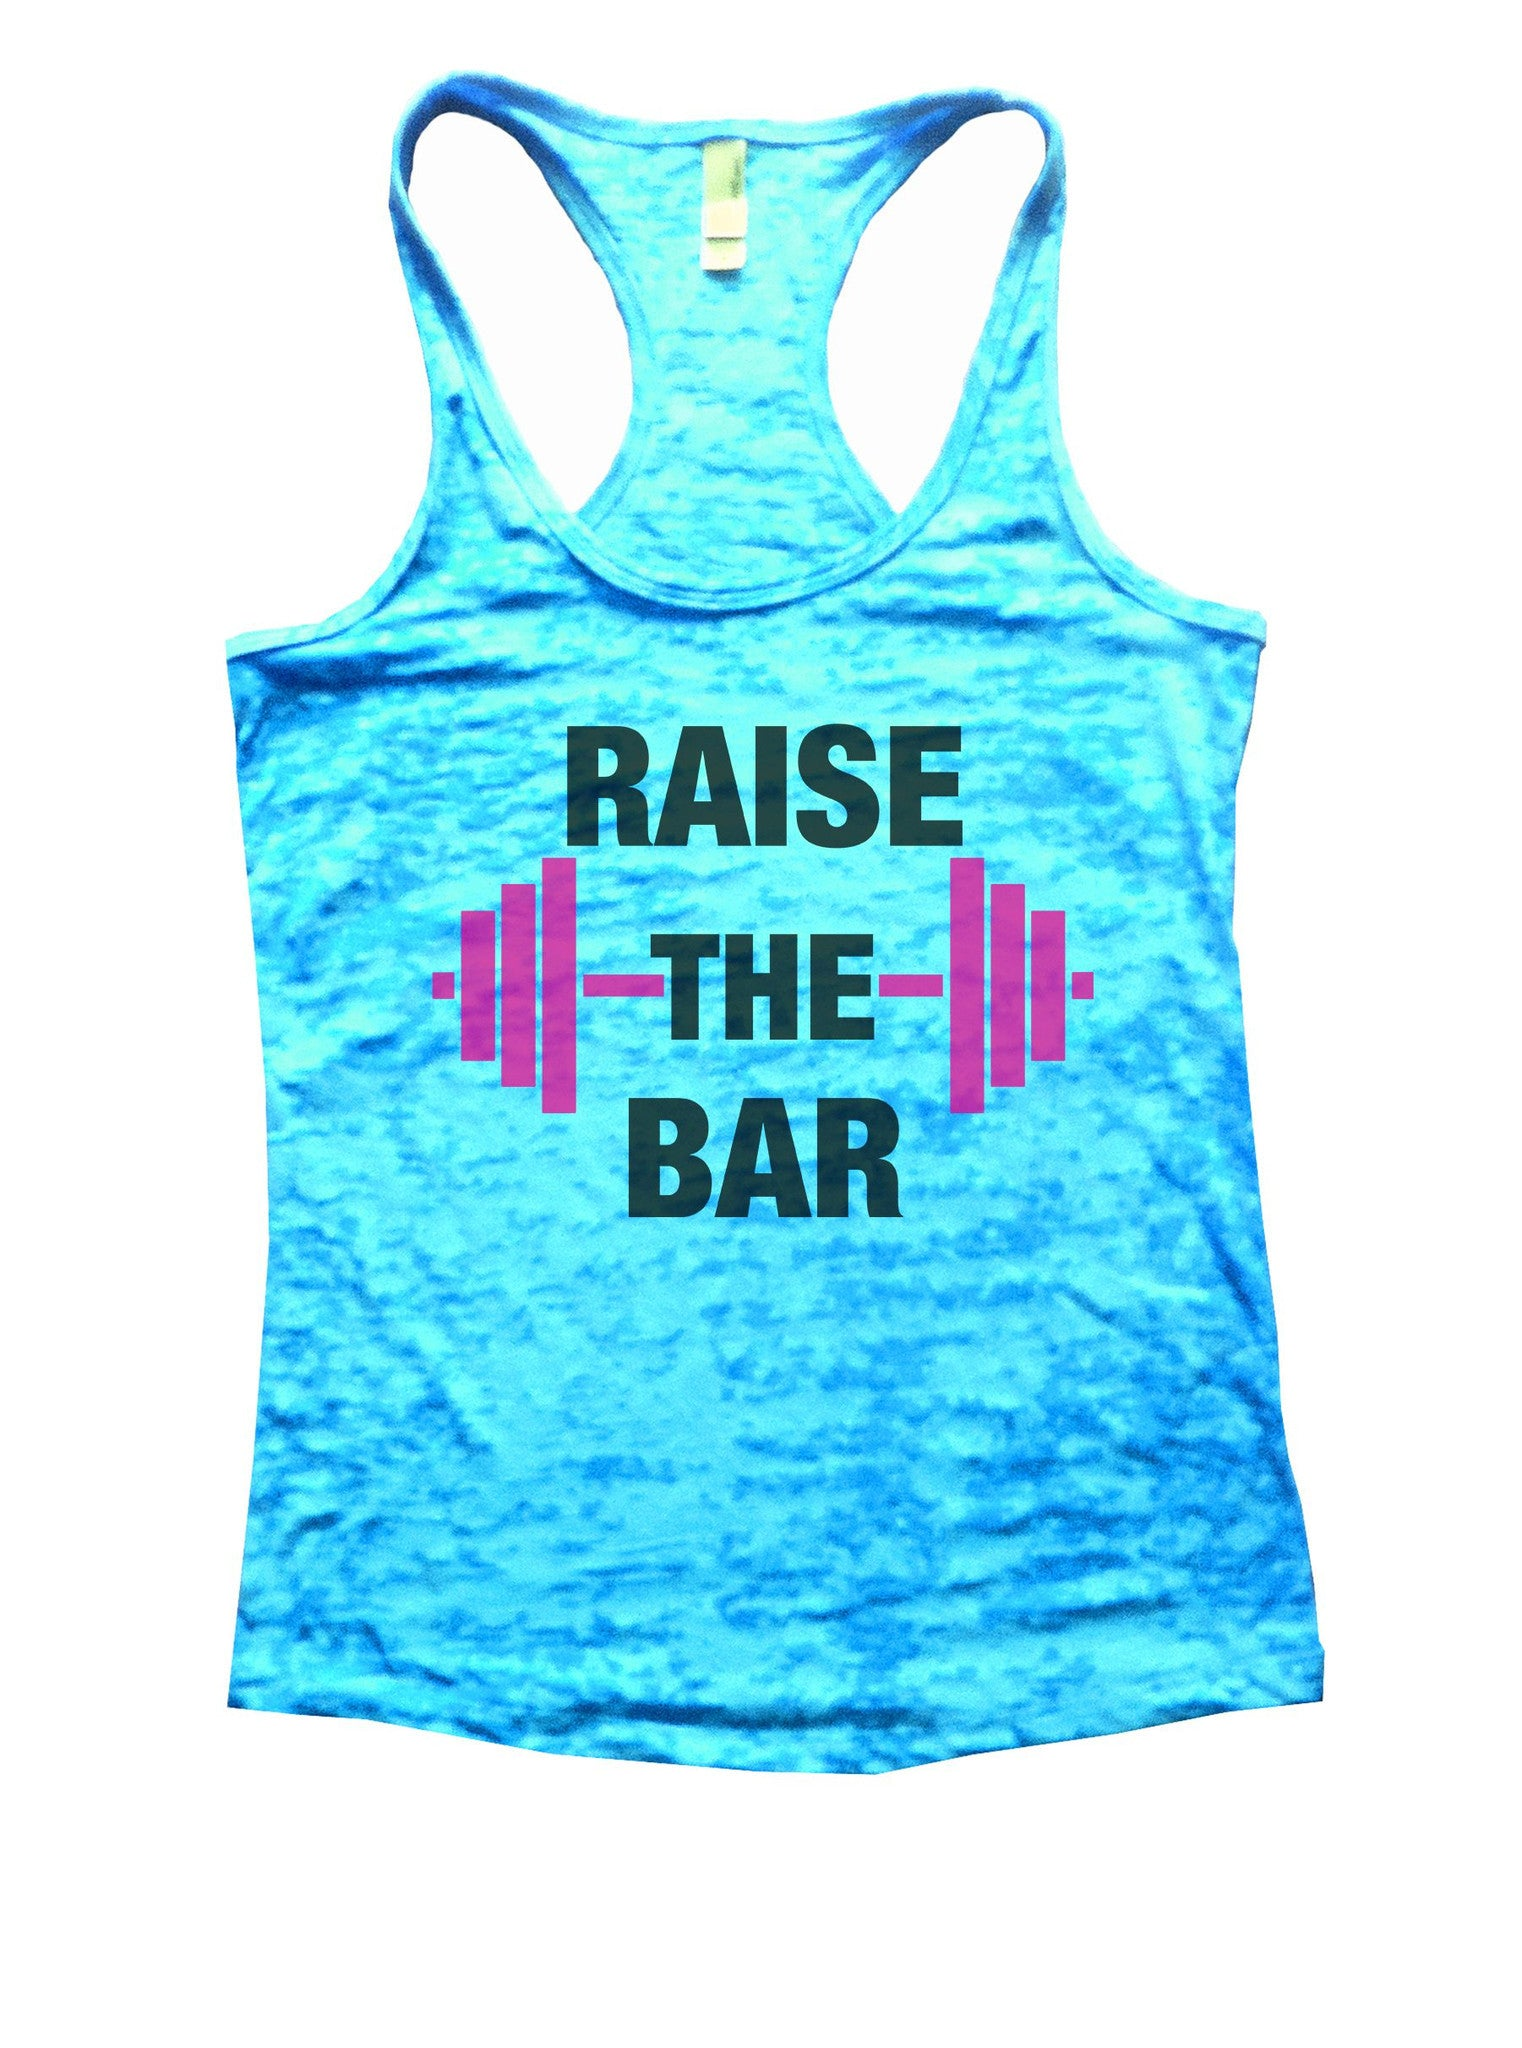 Raise The Bar Burnout Tank Top By BurnoutTankTops.com - 799 - Funny Shirts Tank Tops Burnouts and Triblends  - 4